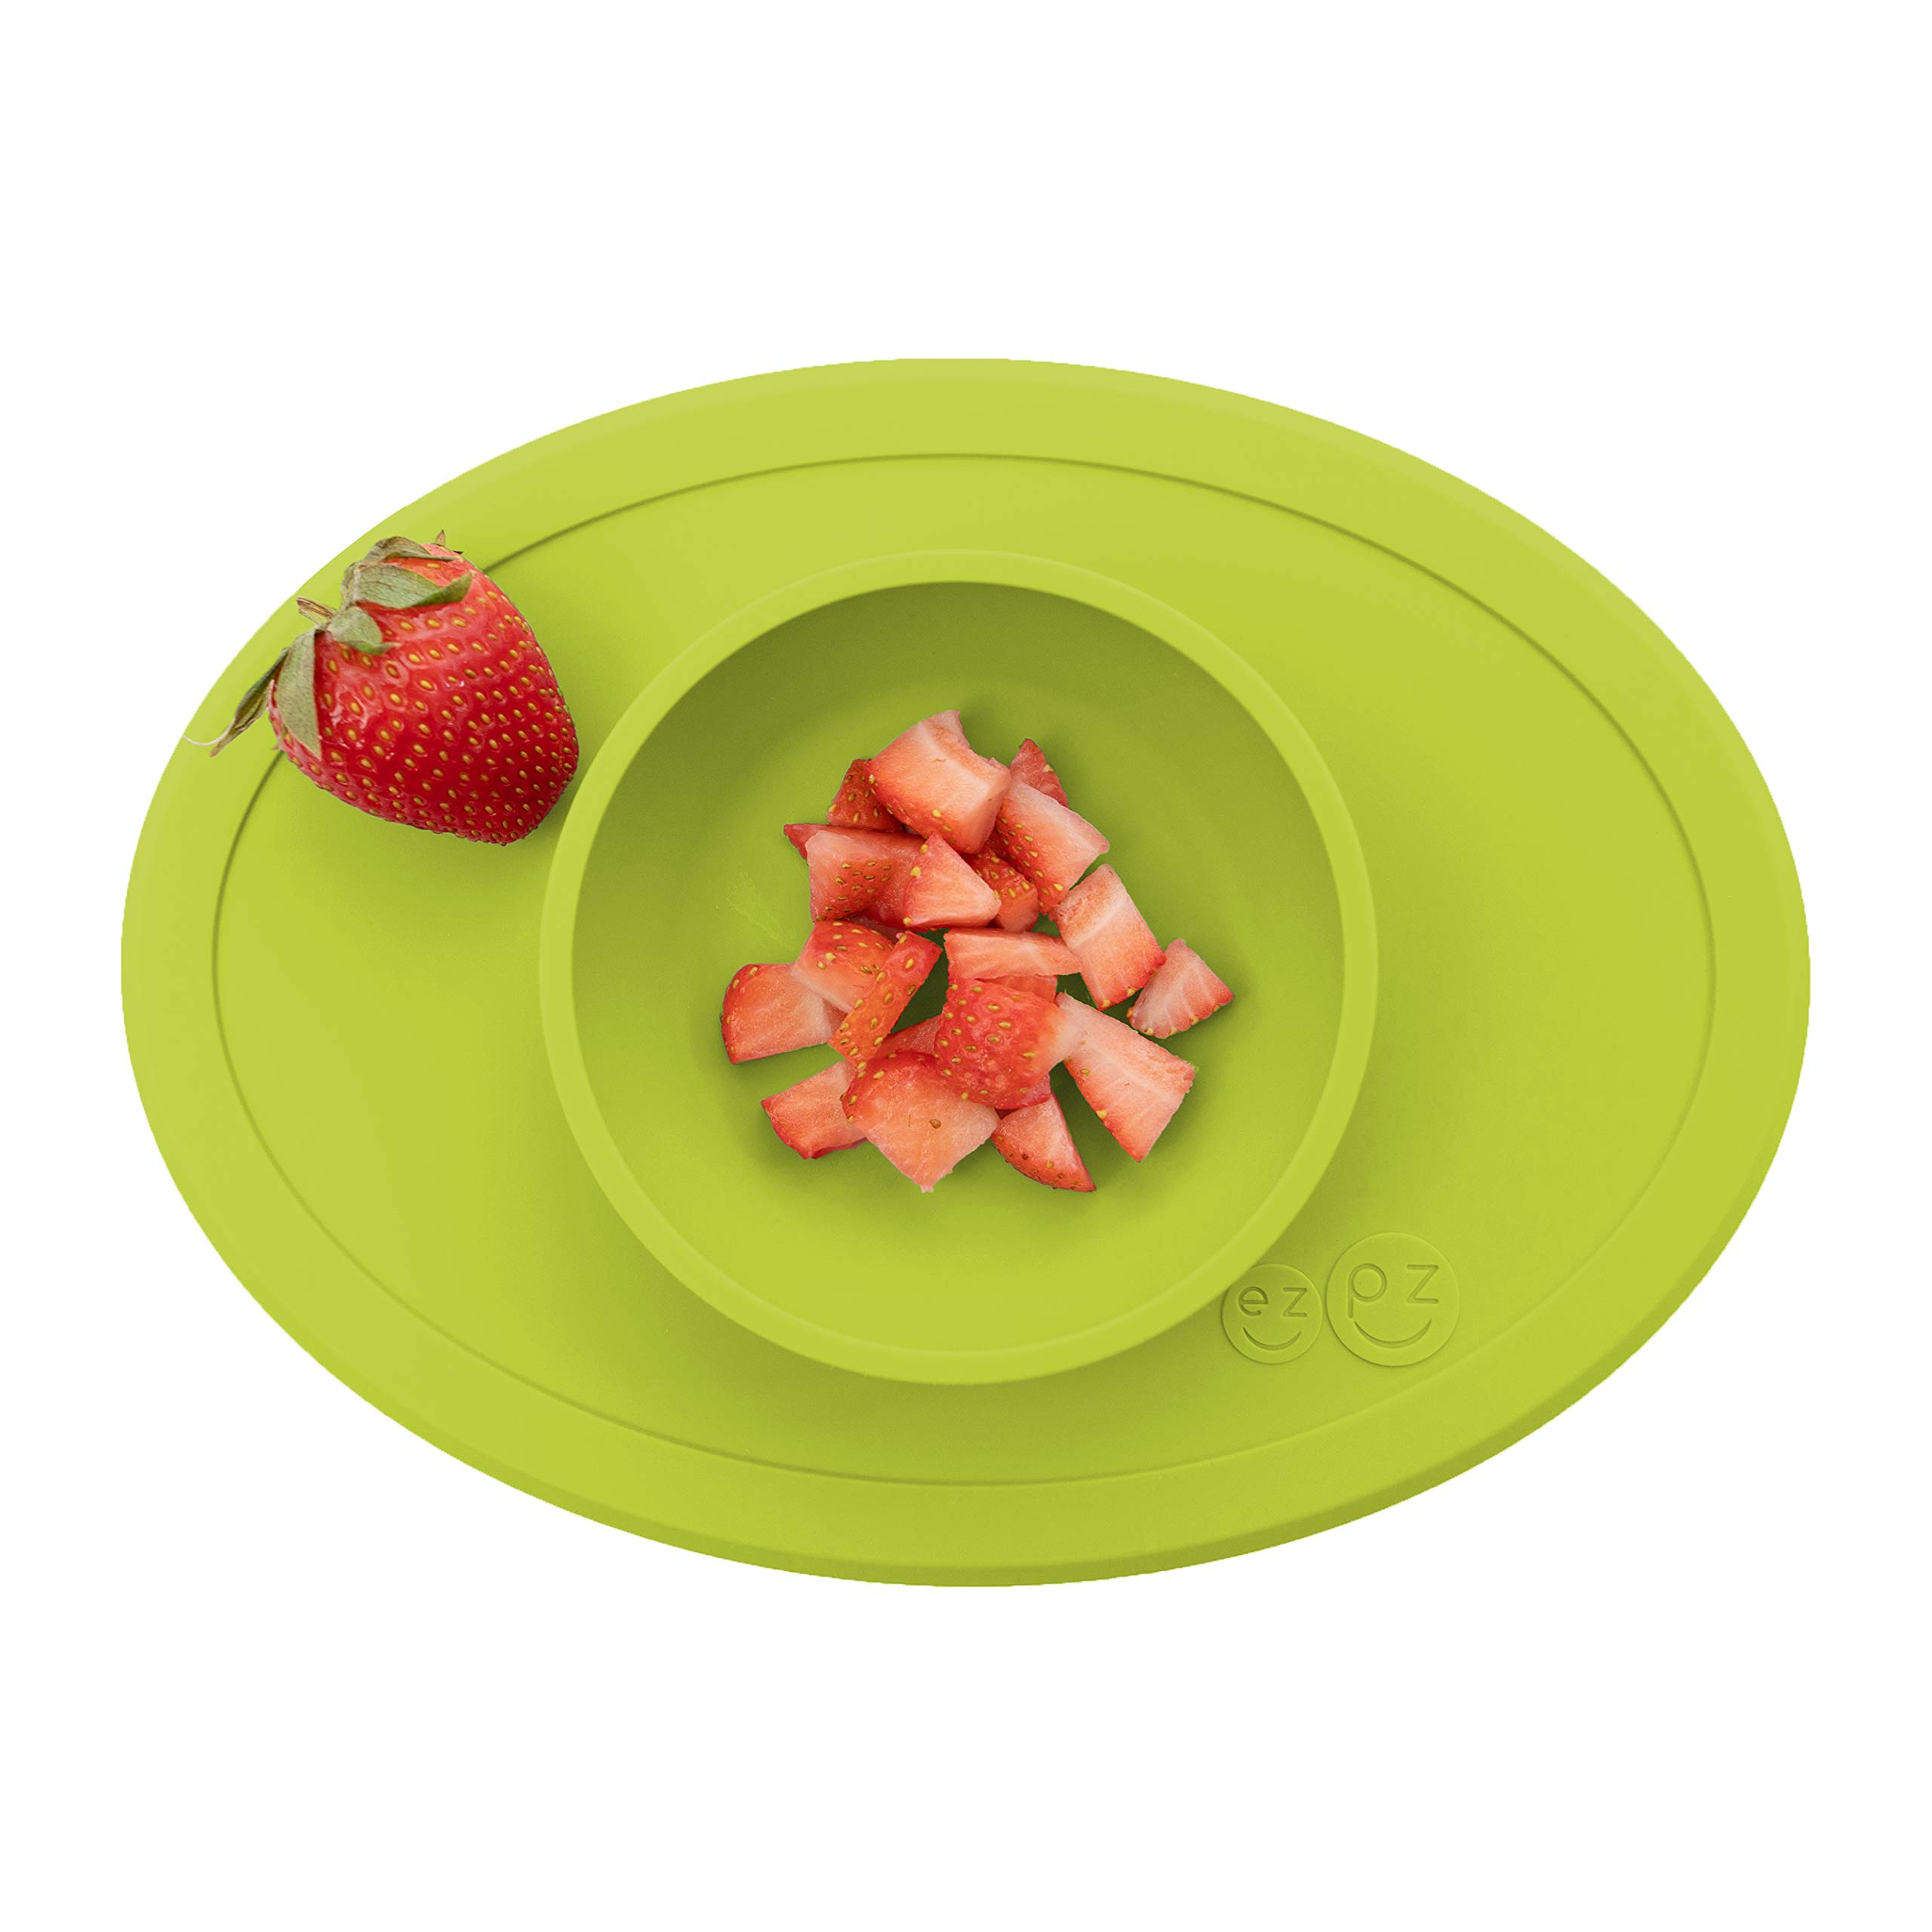 ezpz Tiny Bowl - One-Piece Silicone placemat + Bowl (Lime) by ezpz